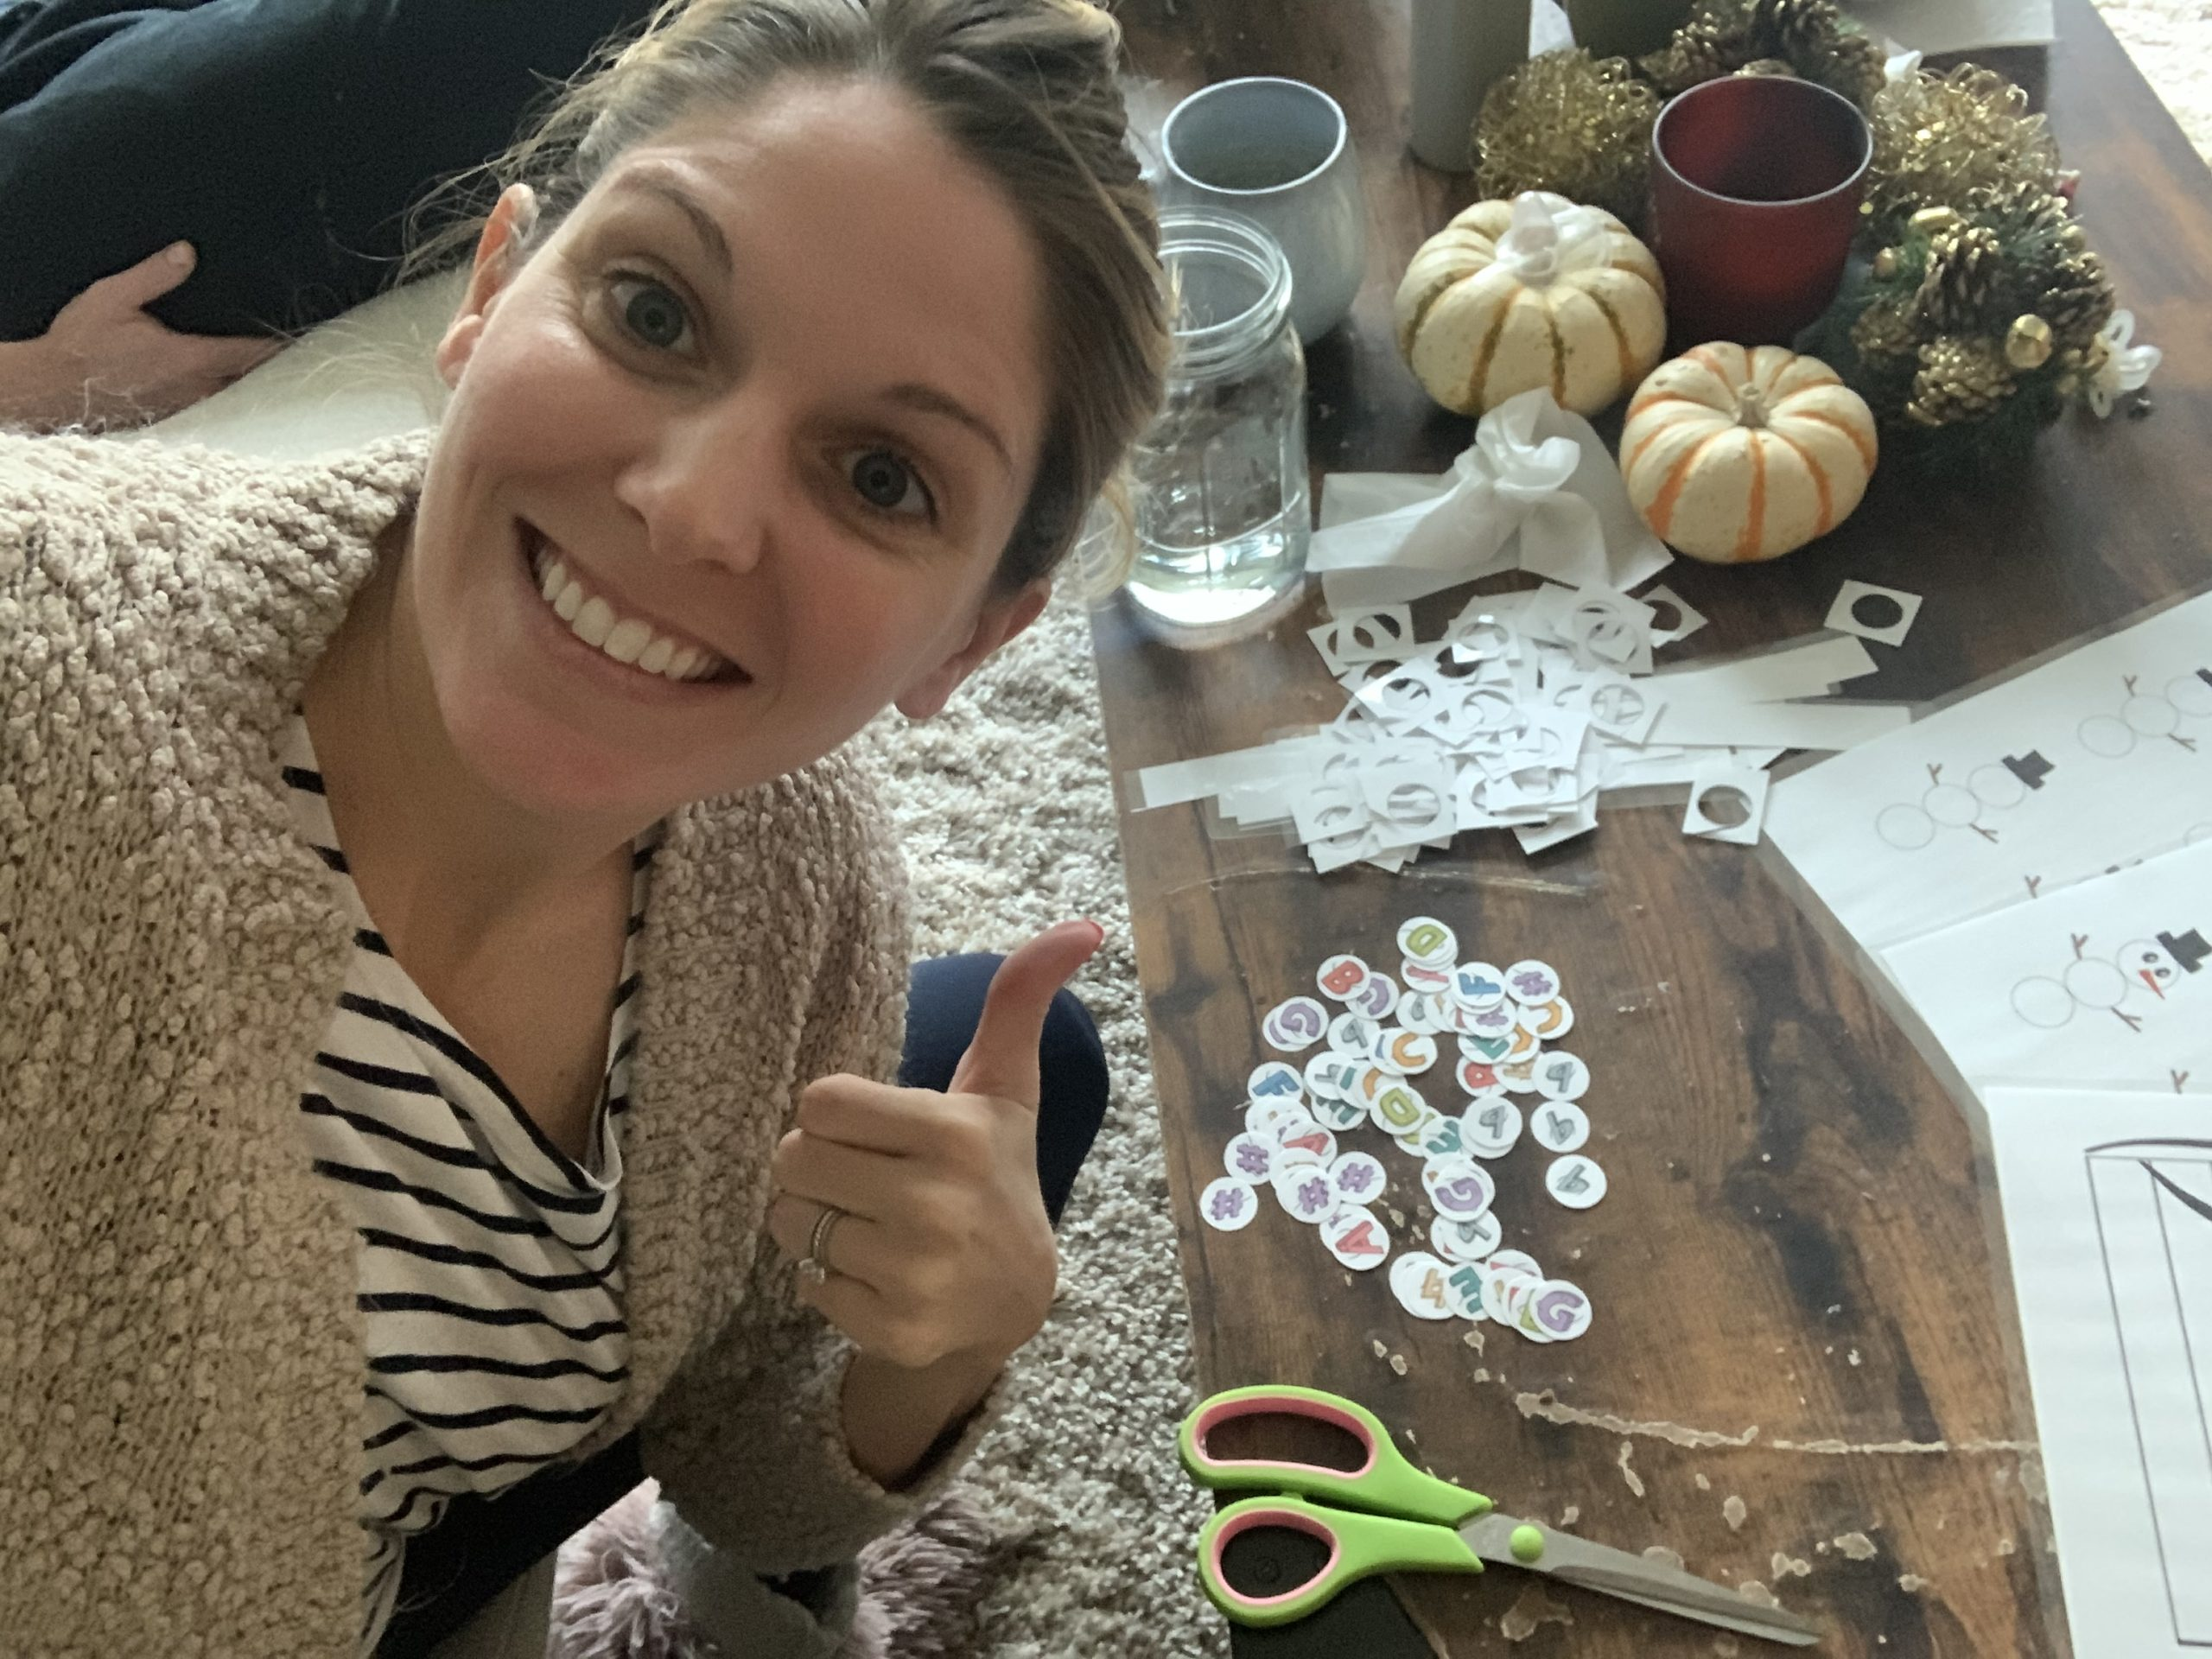 Tara making magnets to teach chords during piano lessons